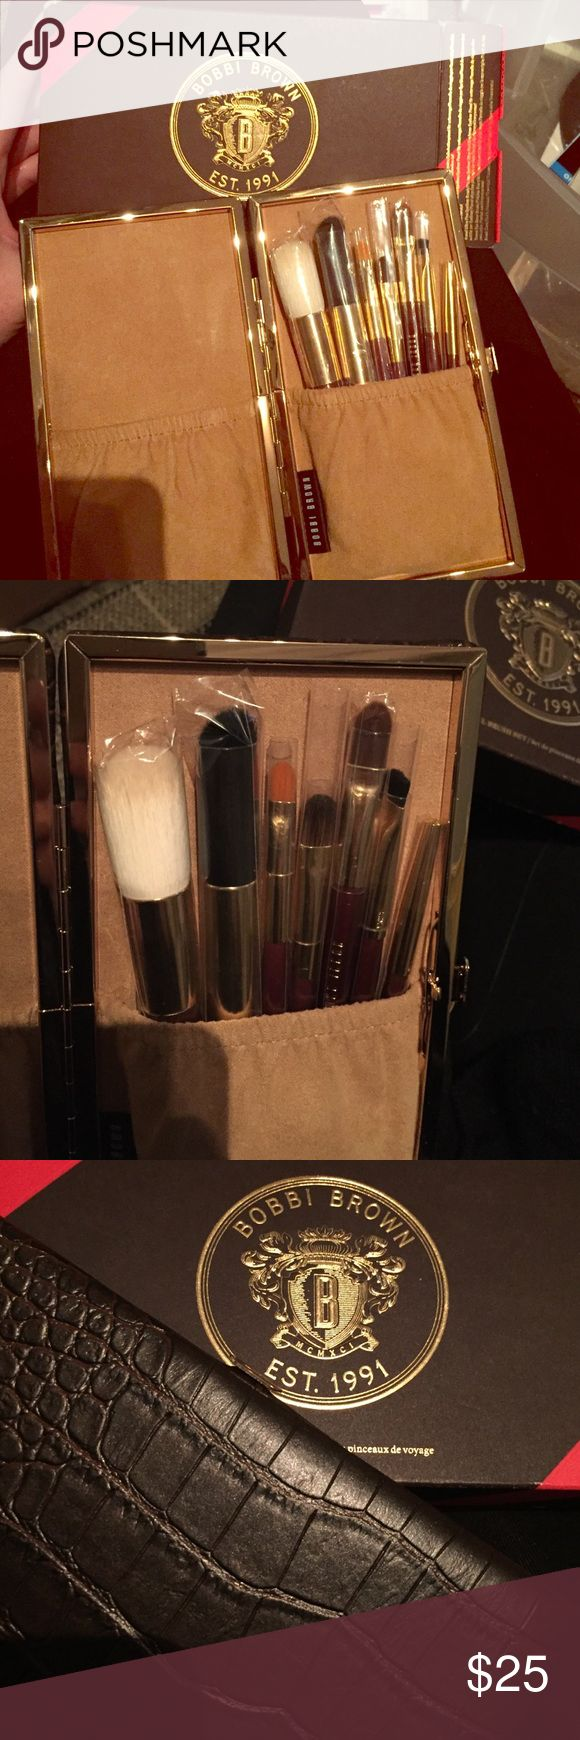 Bobbi Brown brush set, brand new, orig $55 Bobbi brown brush set with seven brushes in a luxurious brown faux croc set. Never used! Bobbi Brown Makeup Brushes & Tools